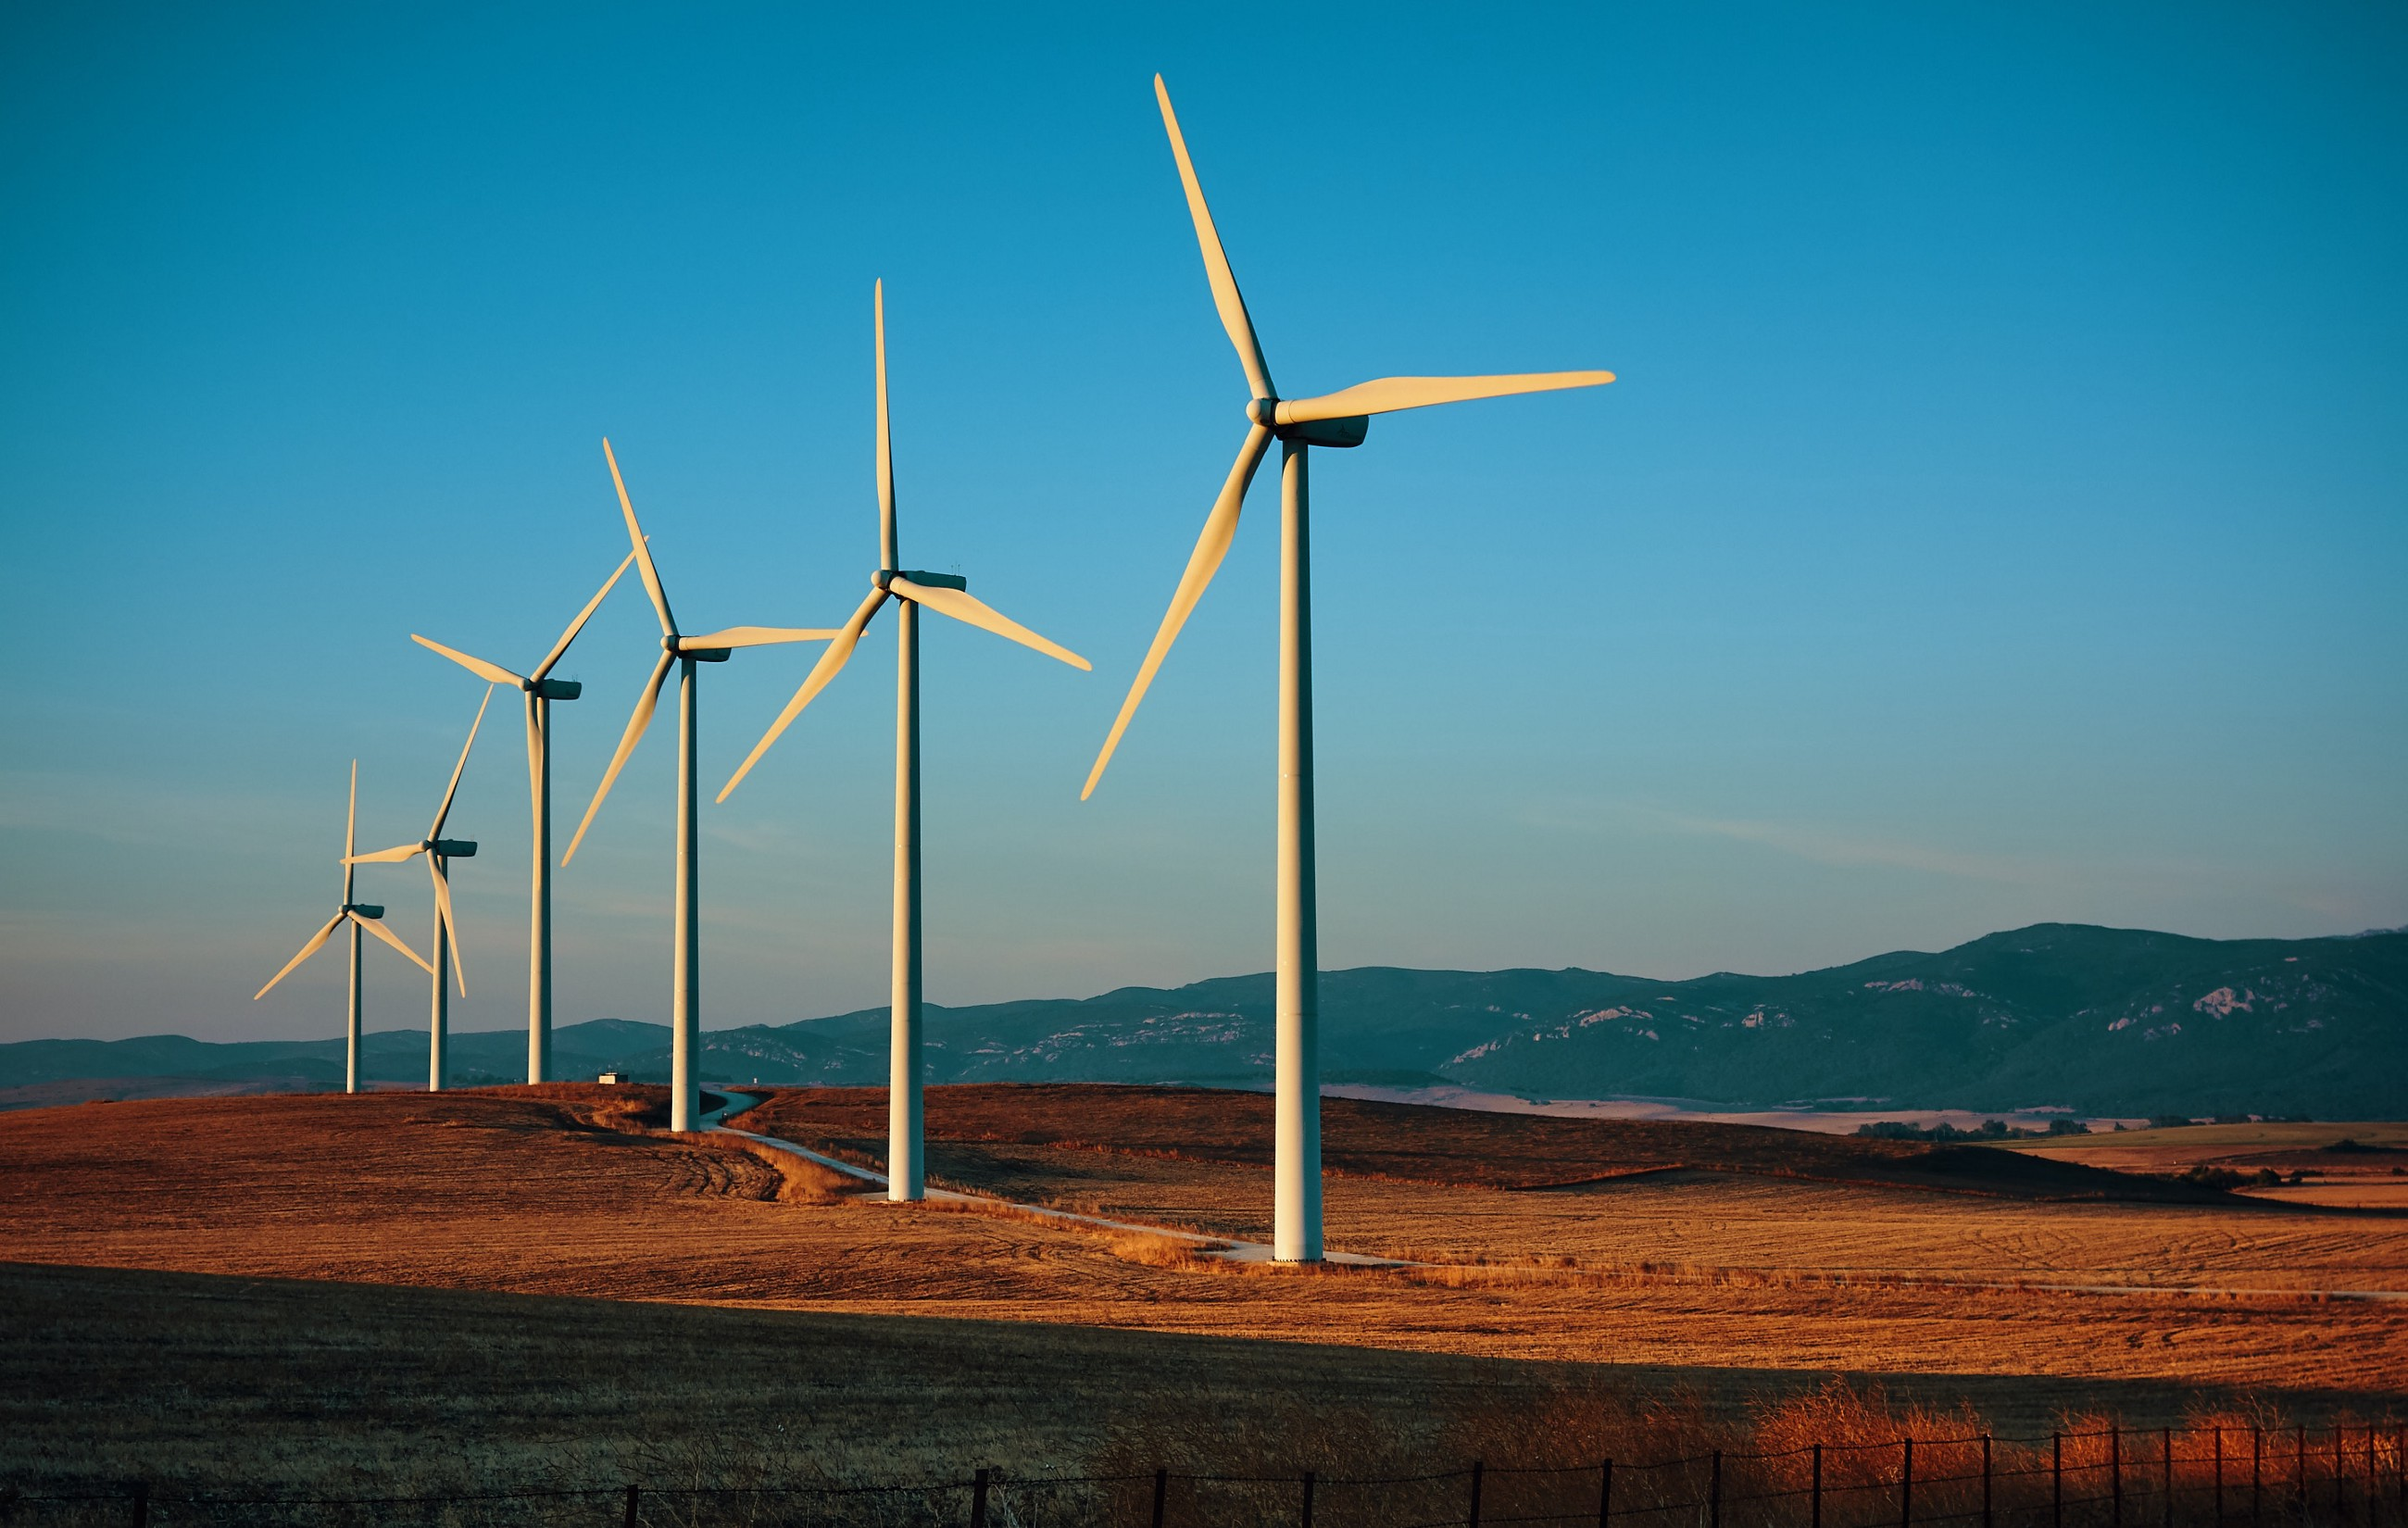 /ai-could-provide-solutions-for-climate-change-cd72c47e7c16 feature image